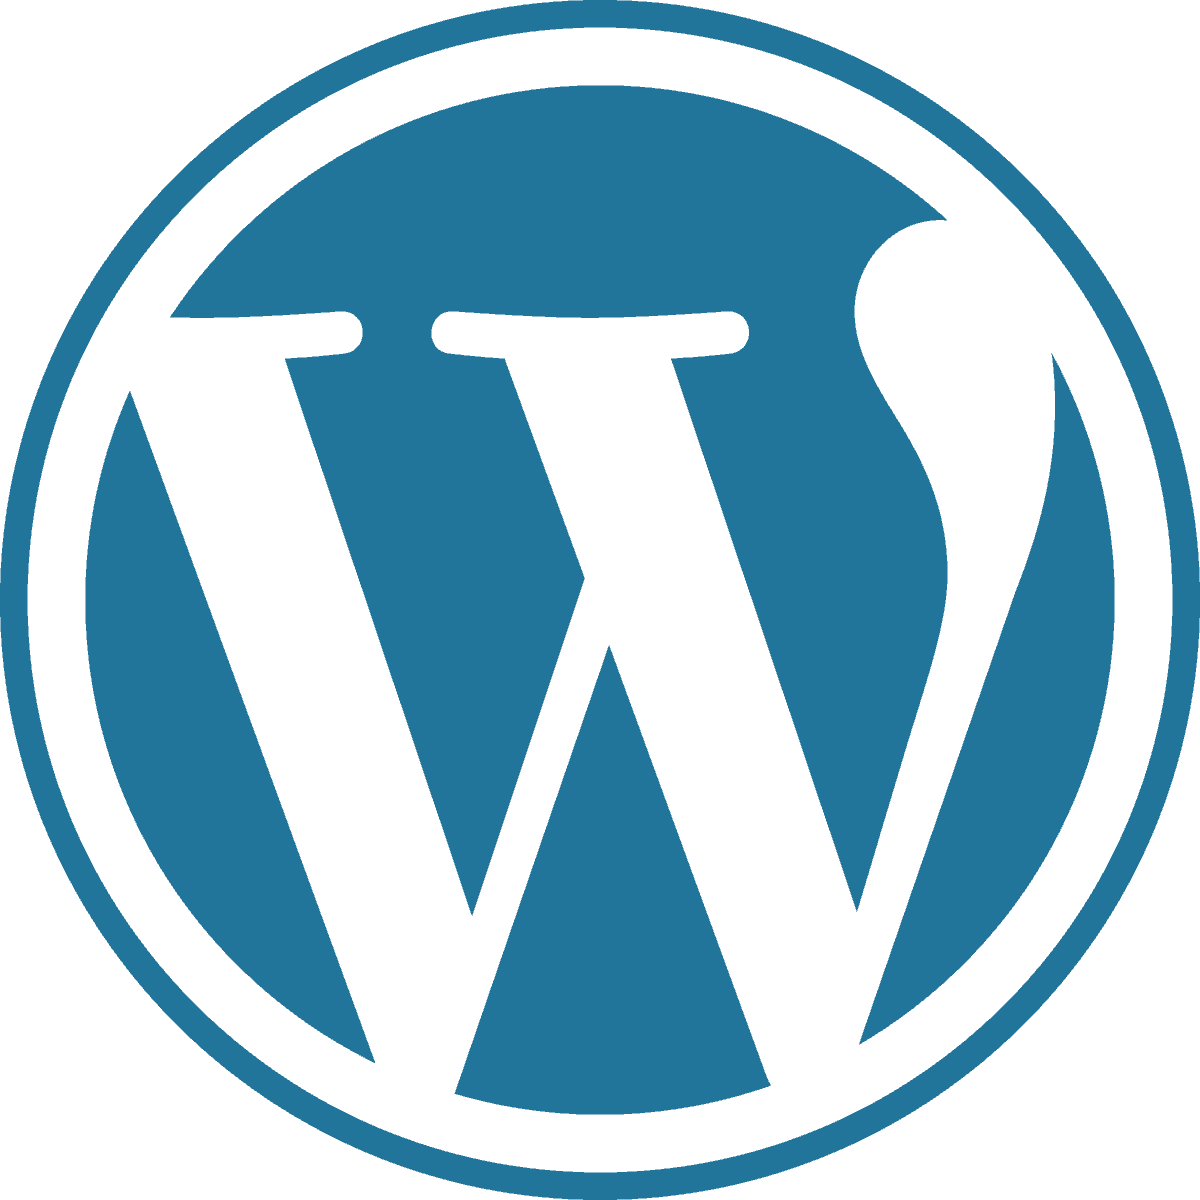 WordPress.comロゴ